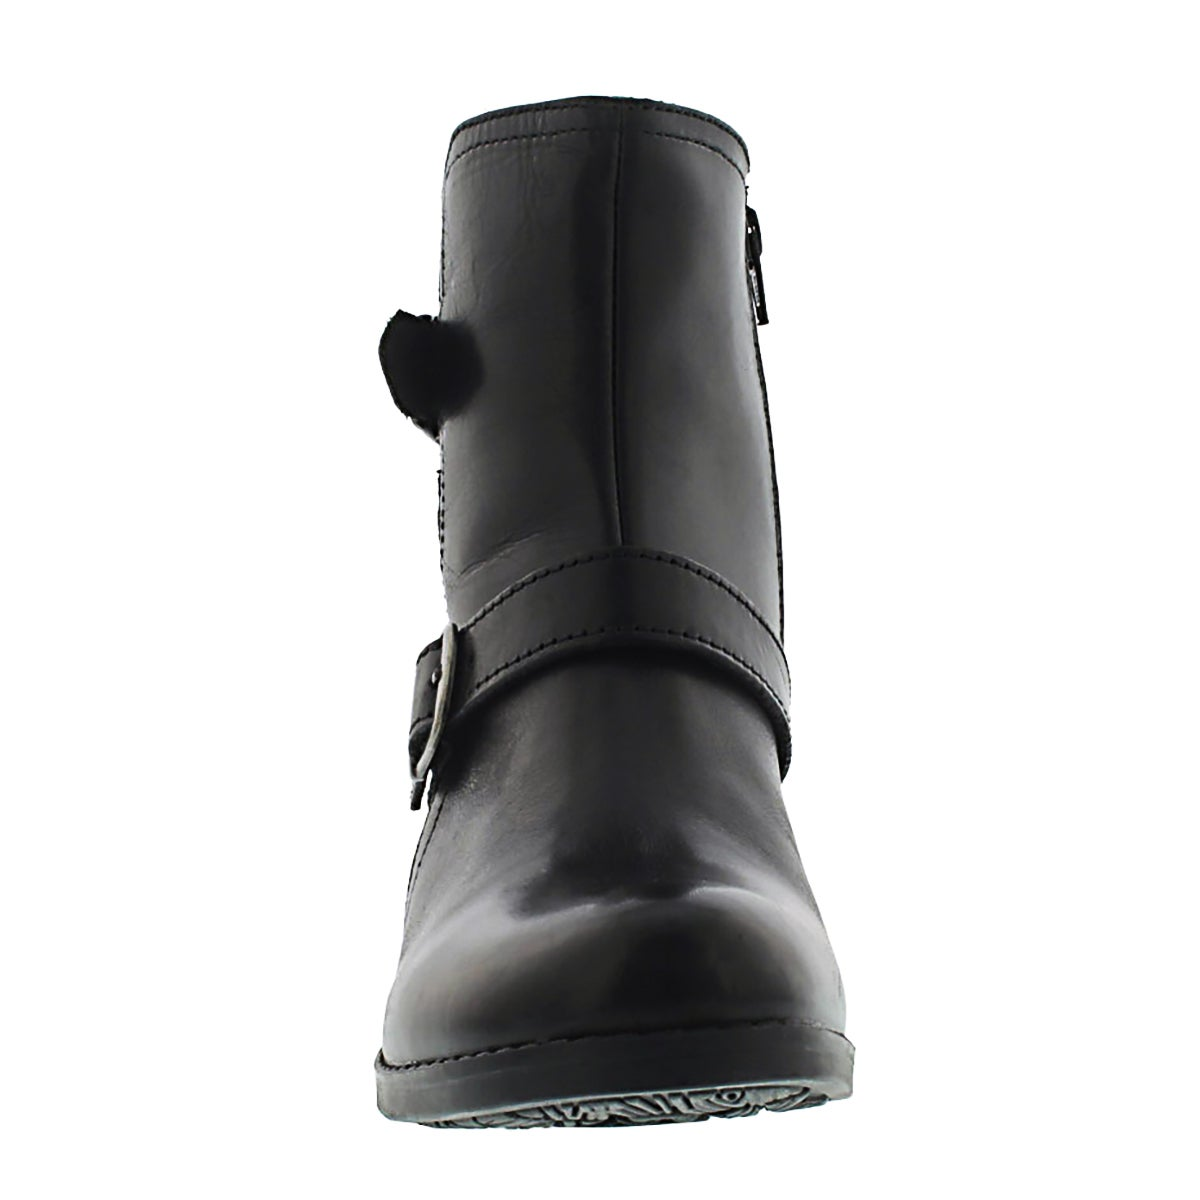 Lds Zoey blk leather ankle boots